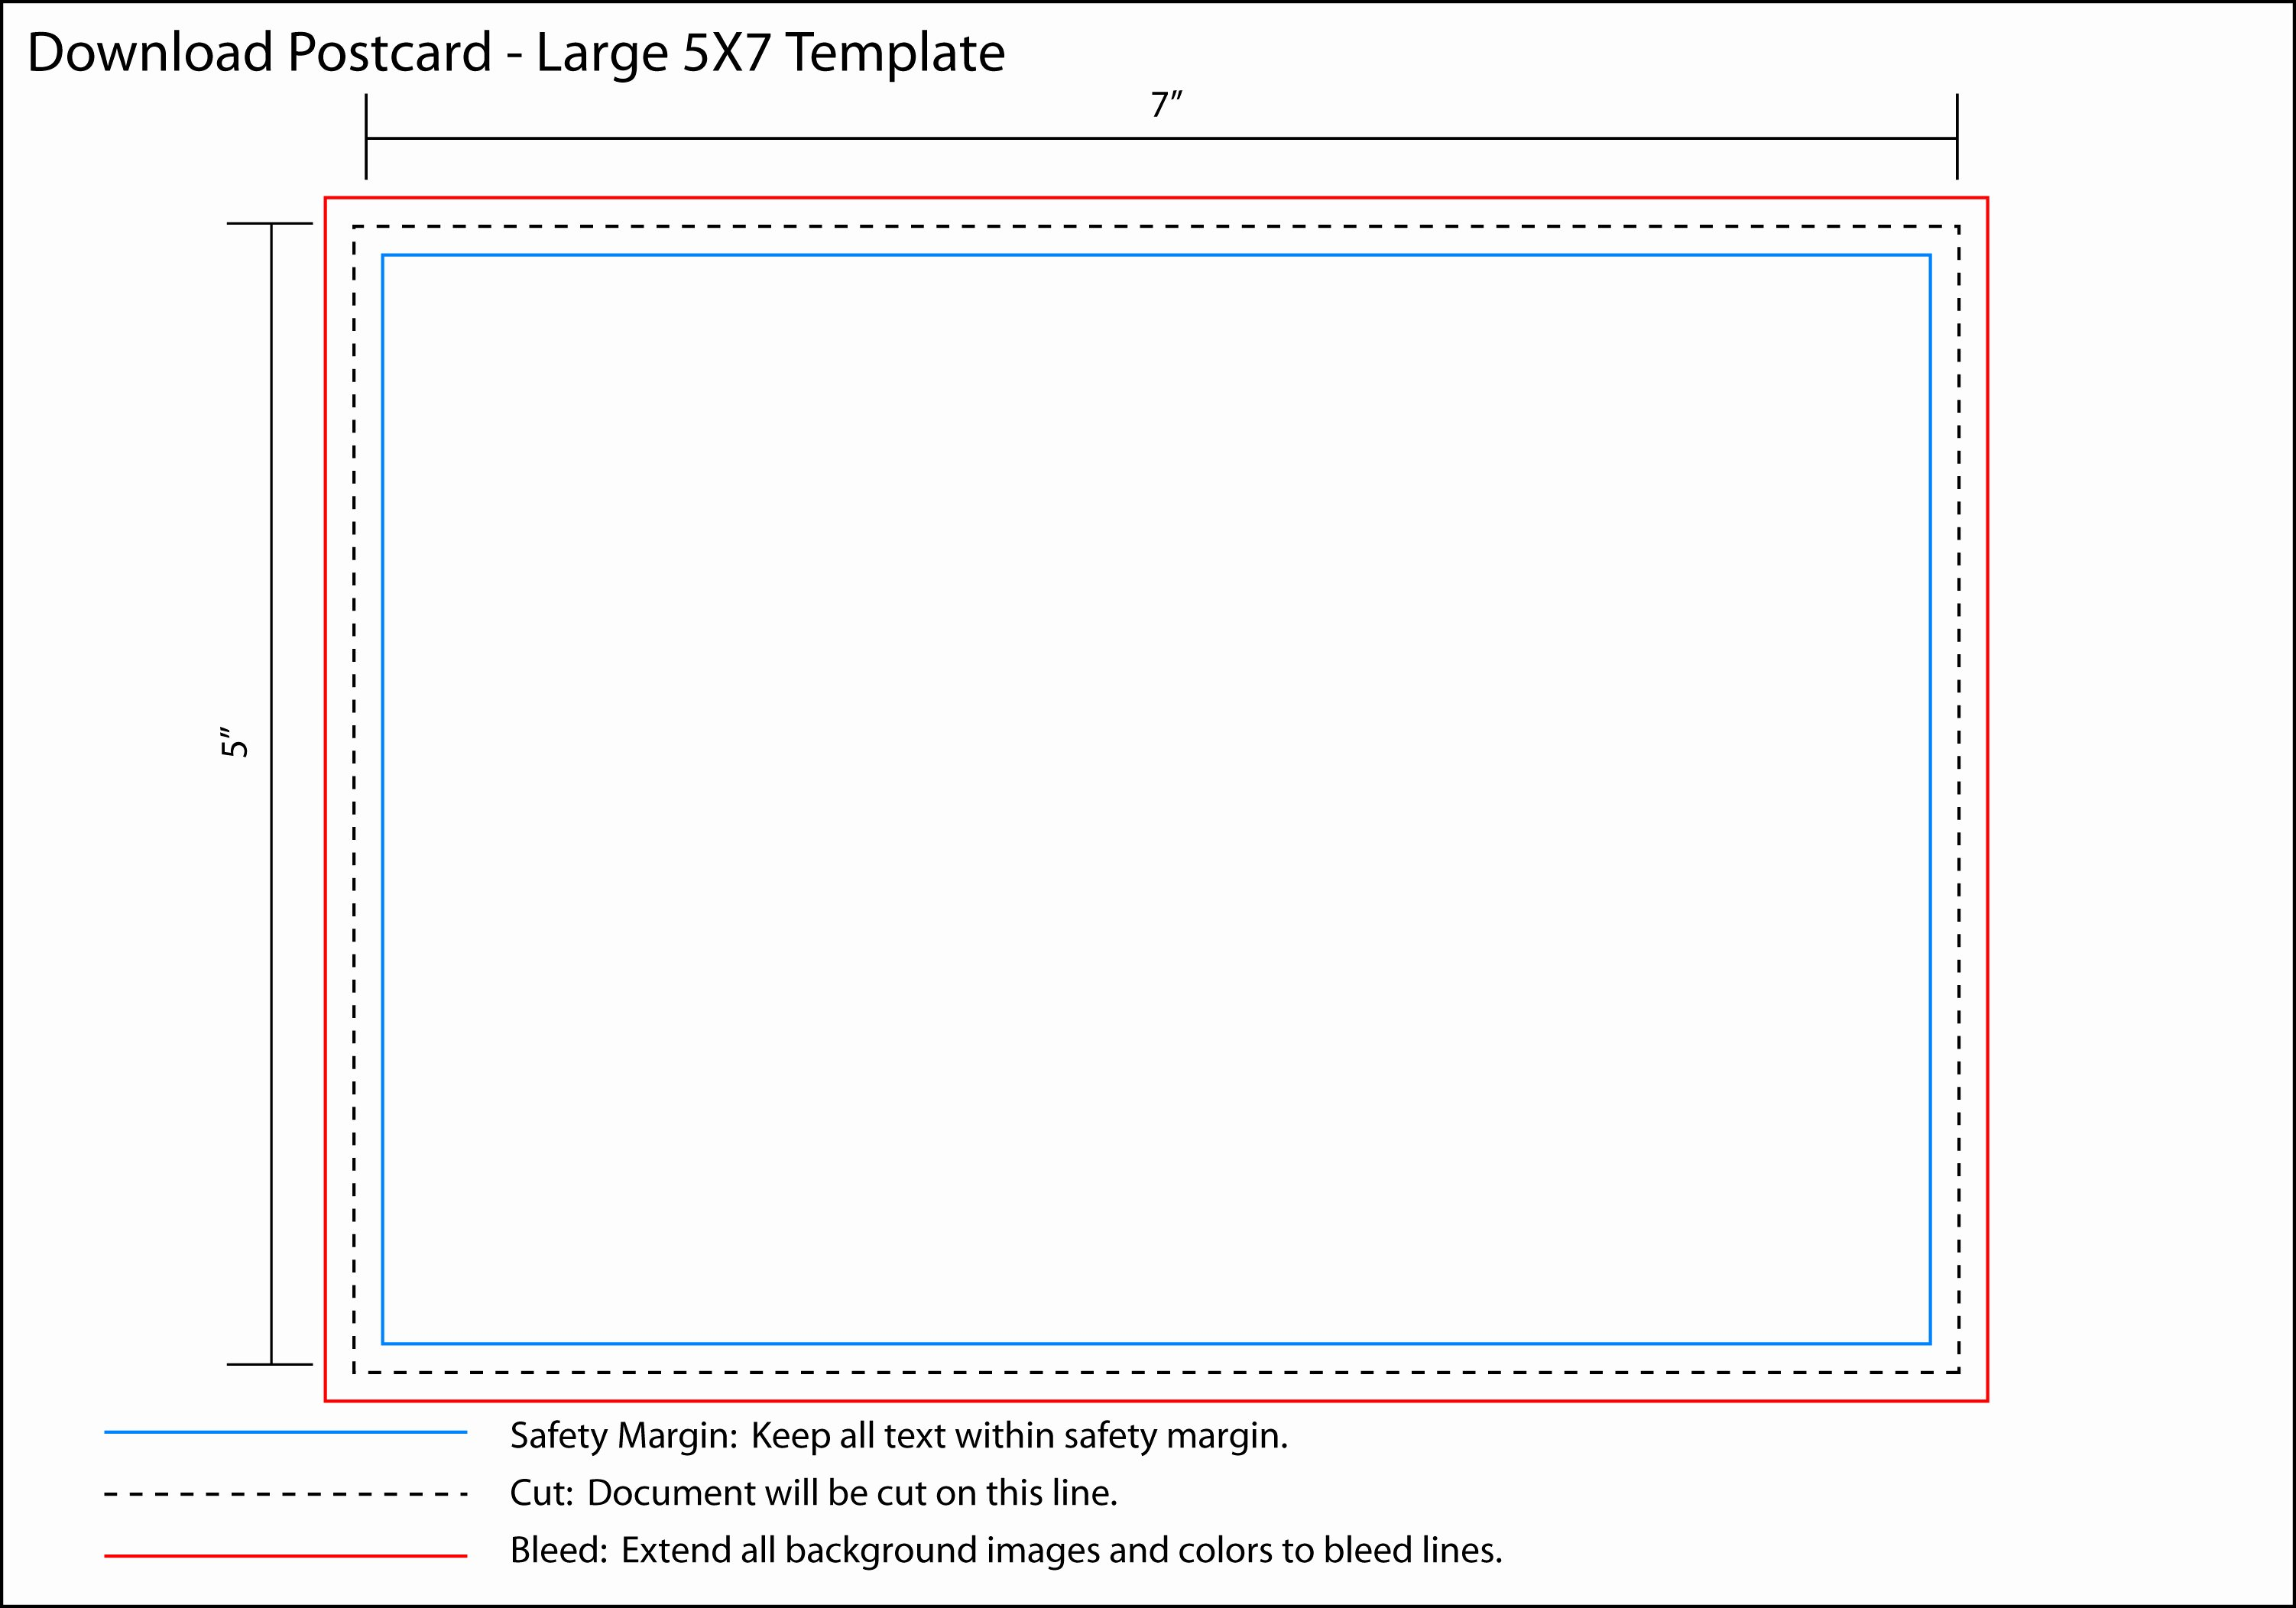 5 X 7 Postcard Template Unique Superdups Cd & Dvd Duplication and Replication and More